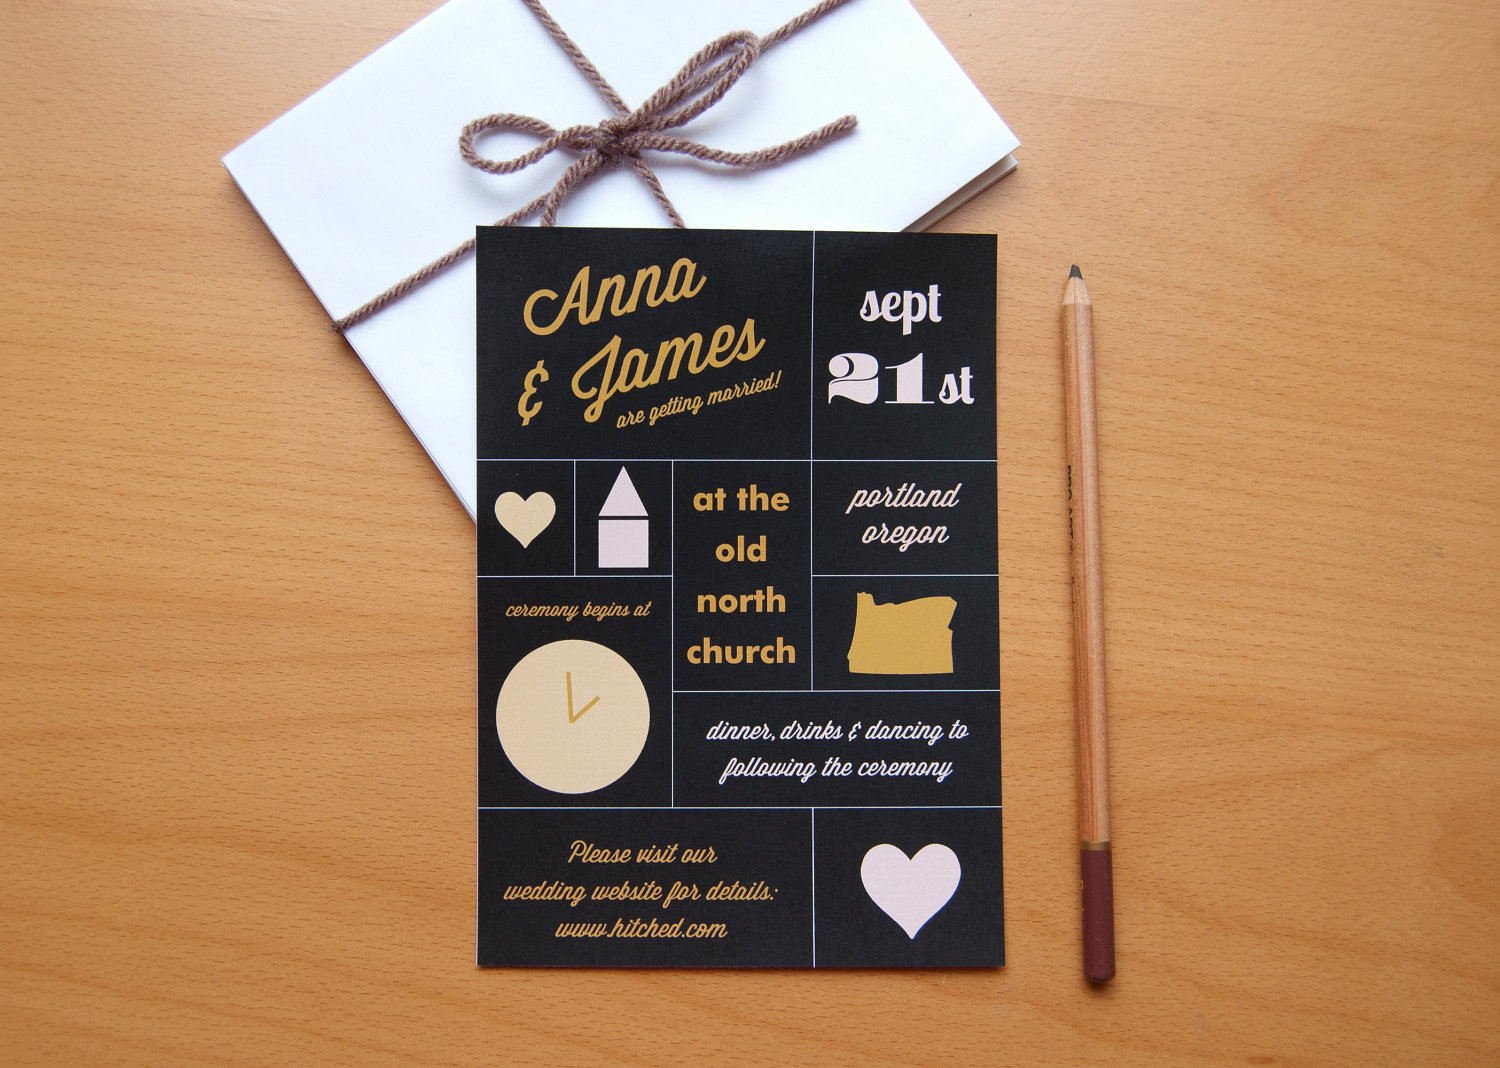 Wedding-invitations-for-modern-weddings-etsy-wedding-finds-infographic.original